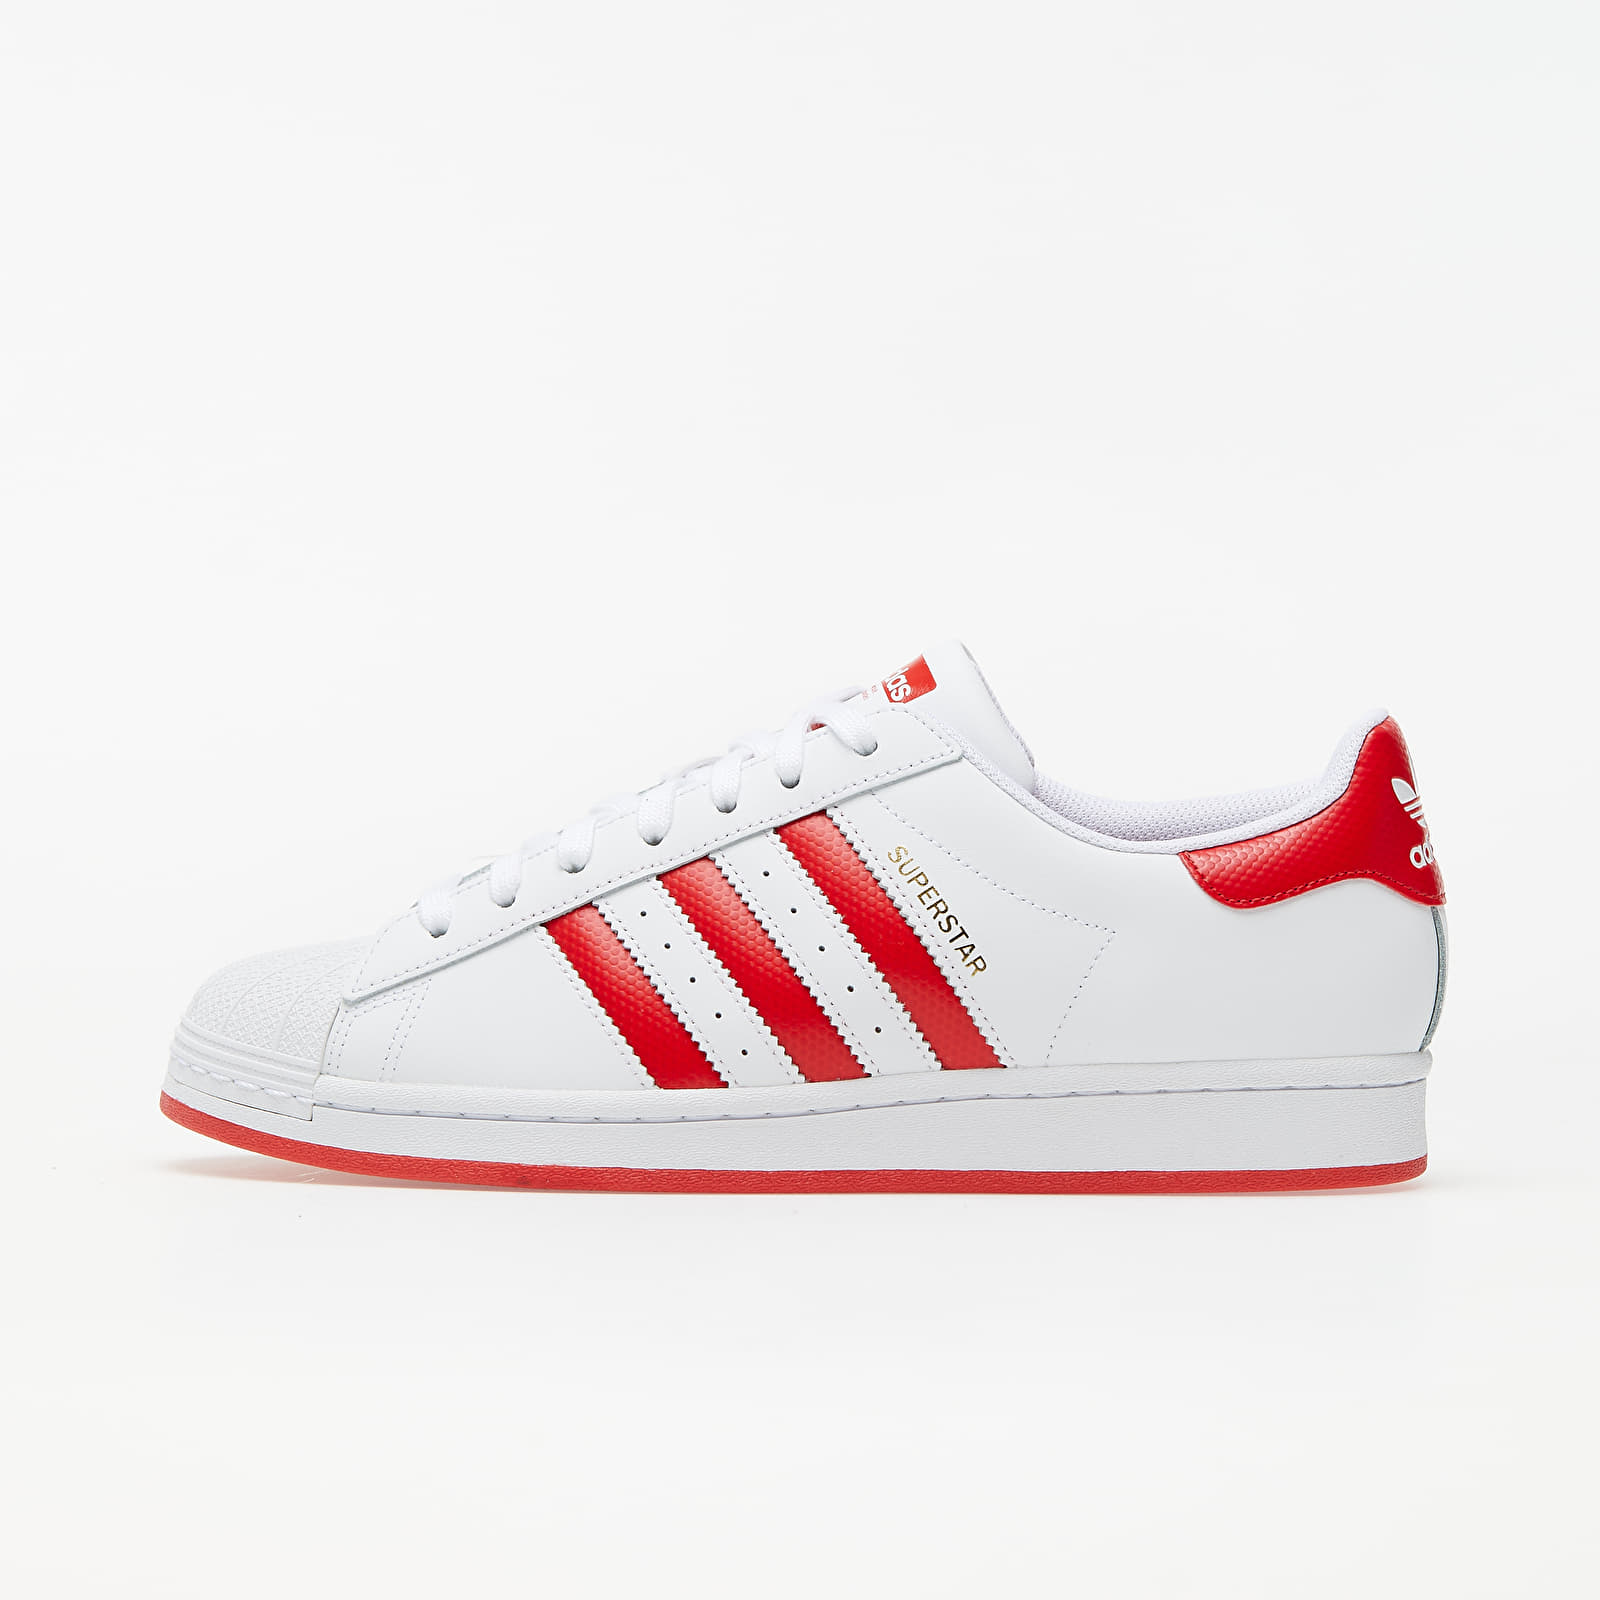 Zapatillas Hombre adidas Superstar Ftw White/ Lust Red/ Gold Metalic